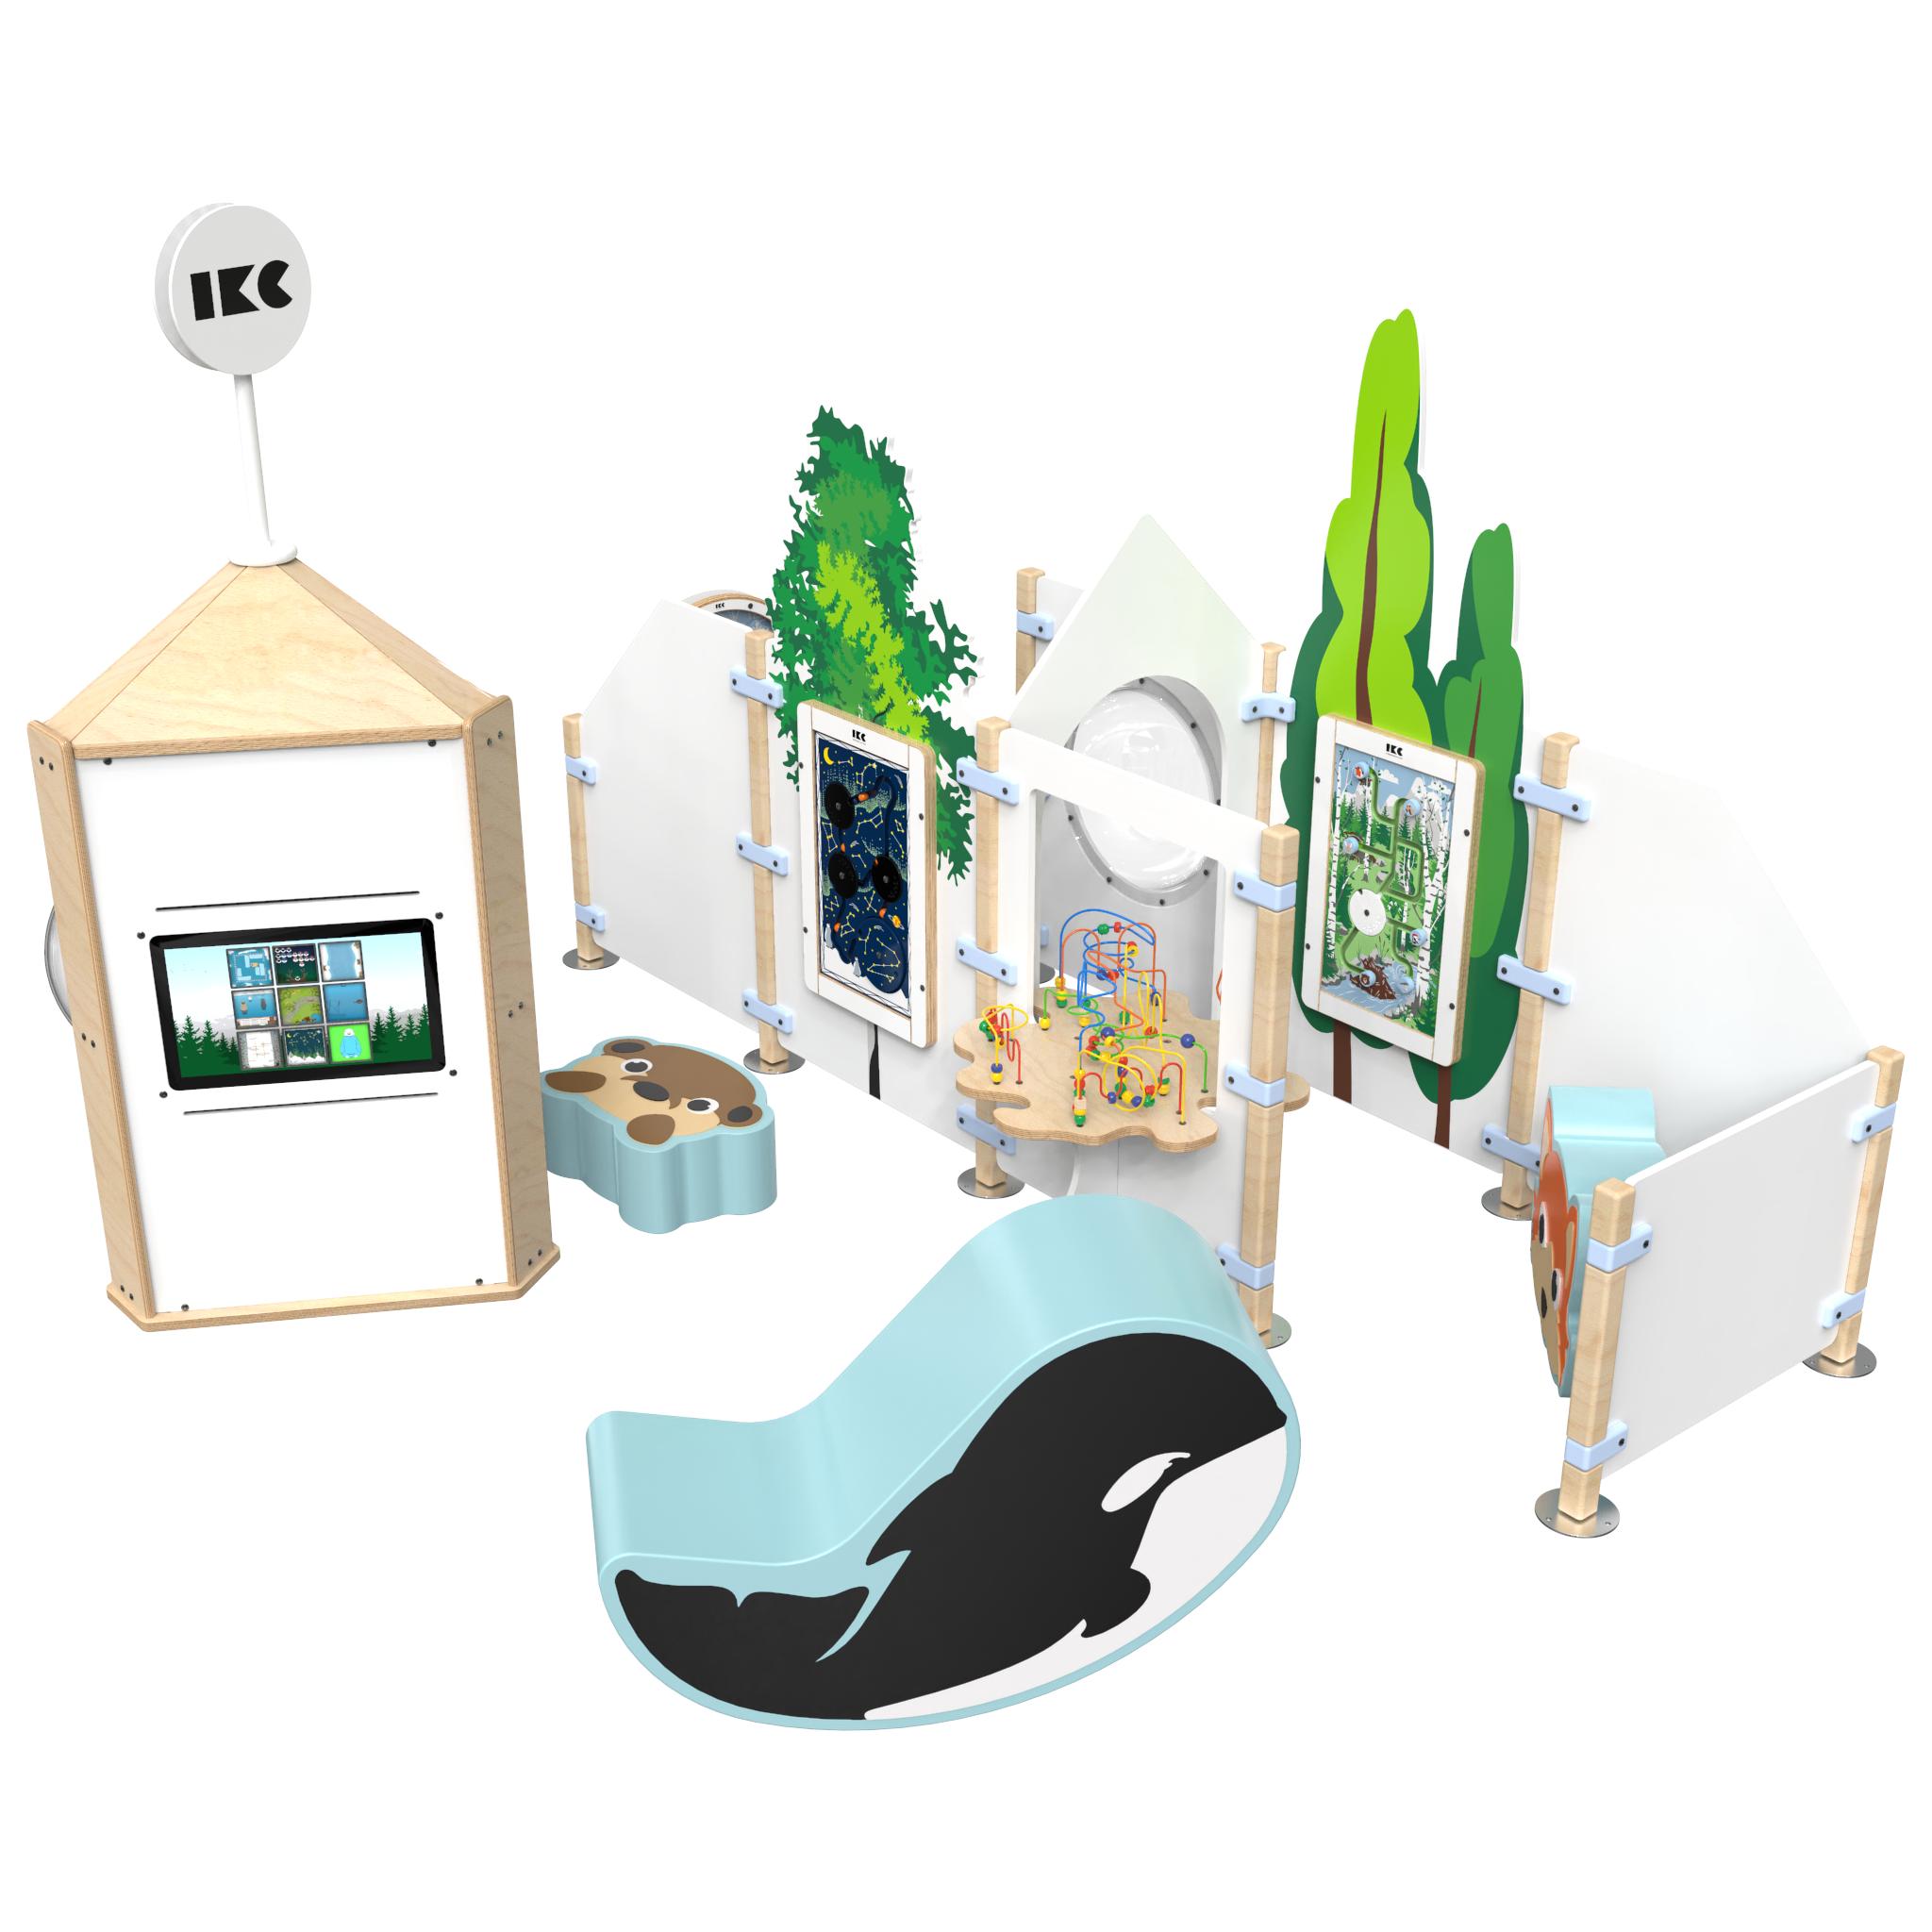 This image shows a play corner | IKC play corners